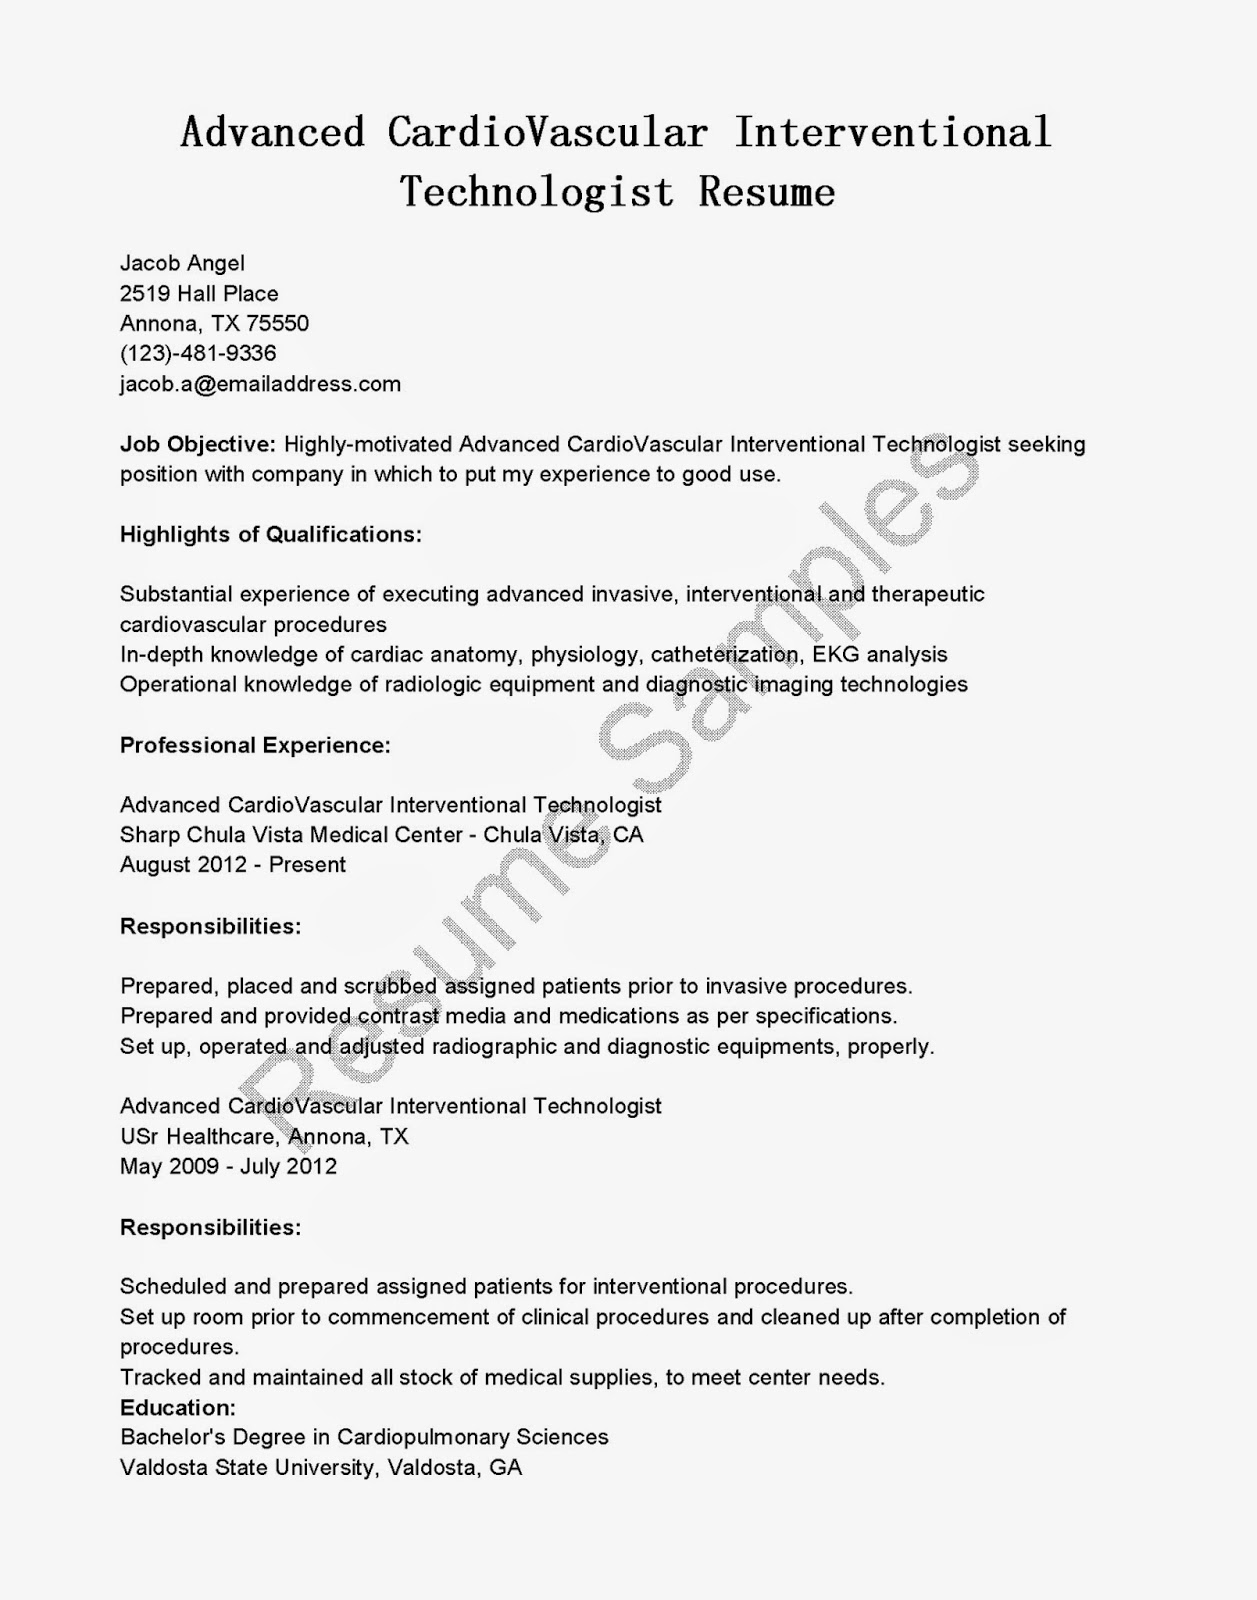 resume samples  advanced cardiovascular interventional